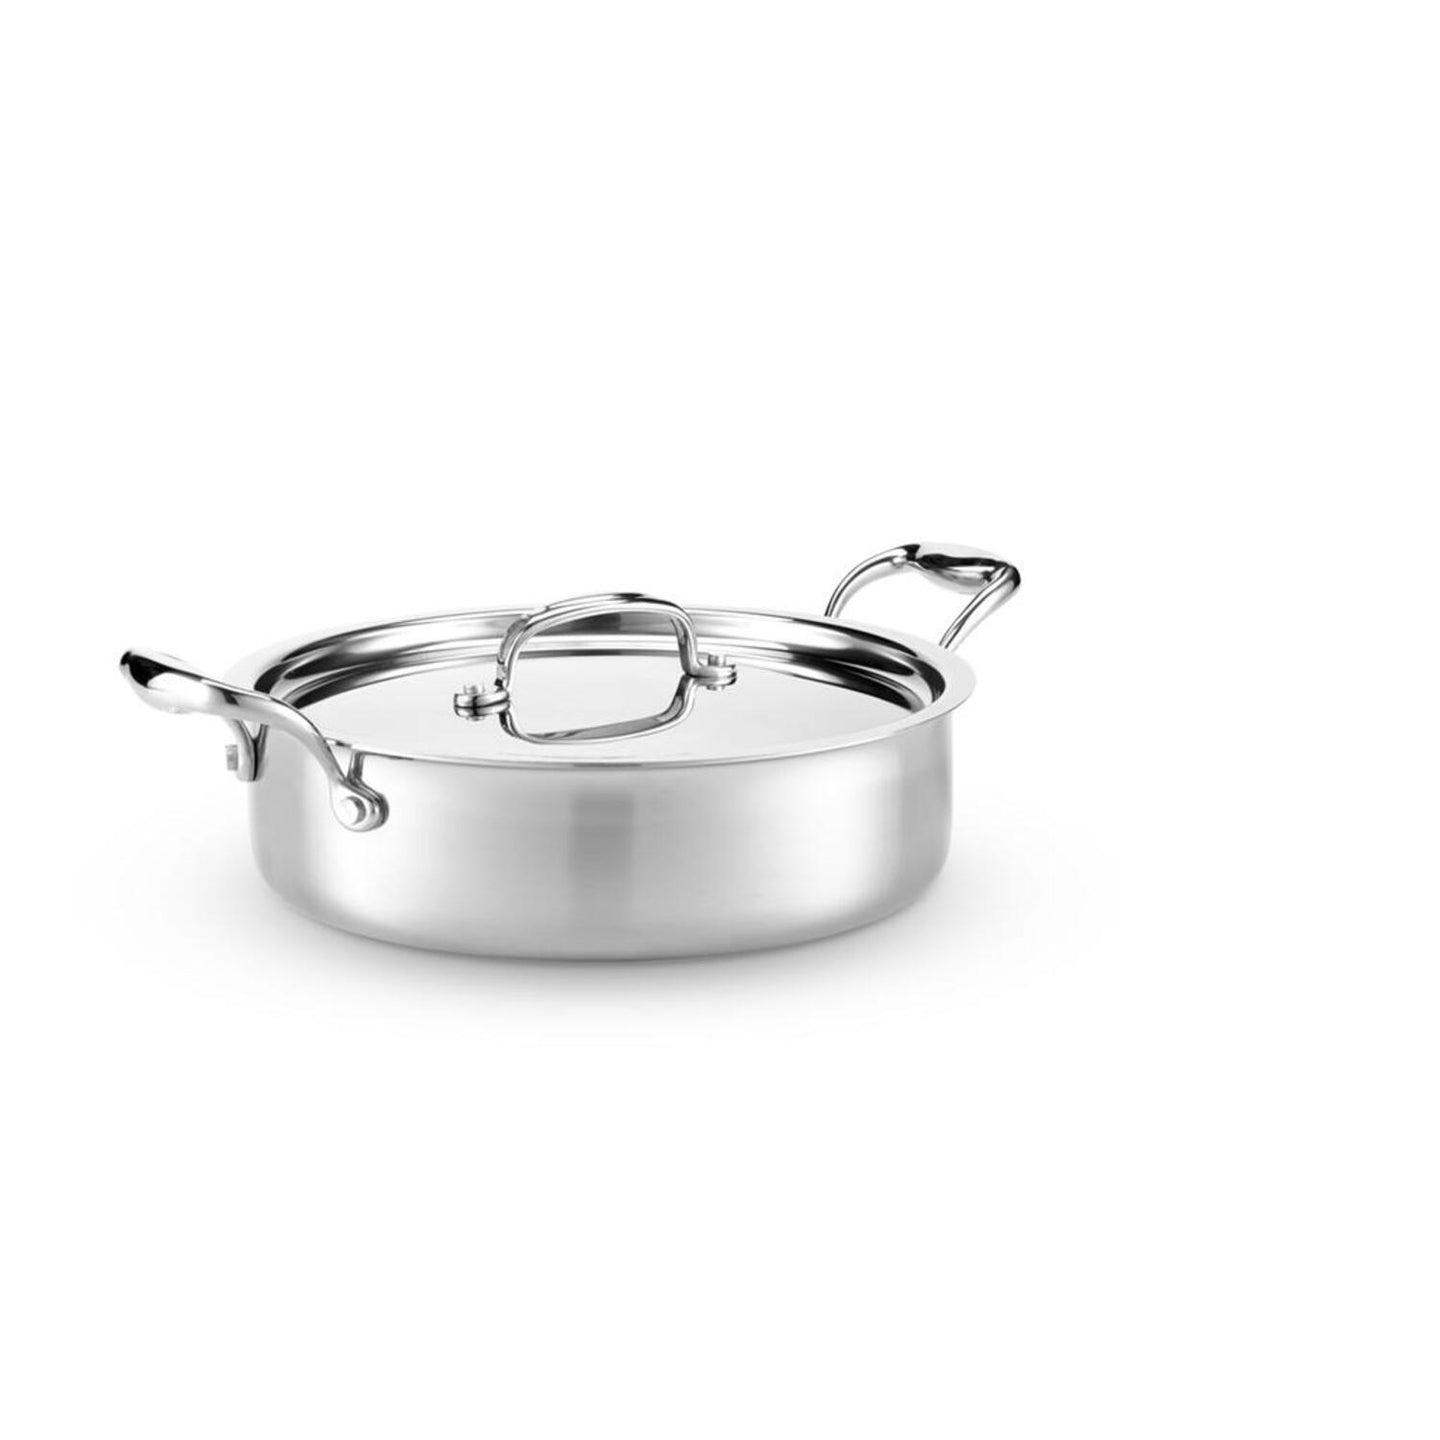 4 Quart Sauteuse with Lid - Factory Second